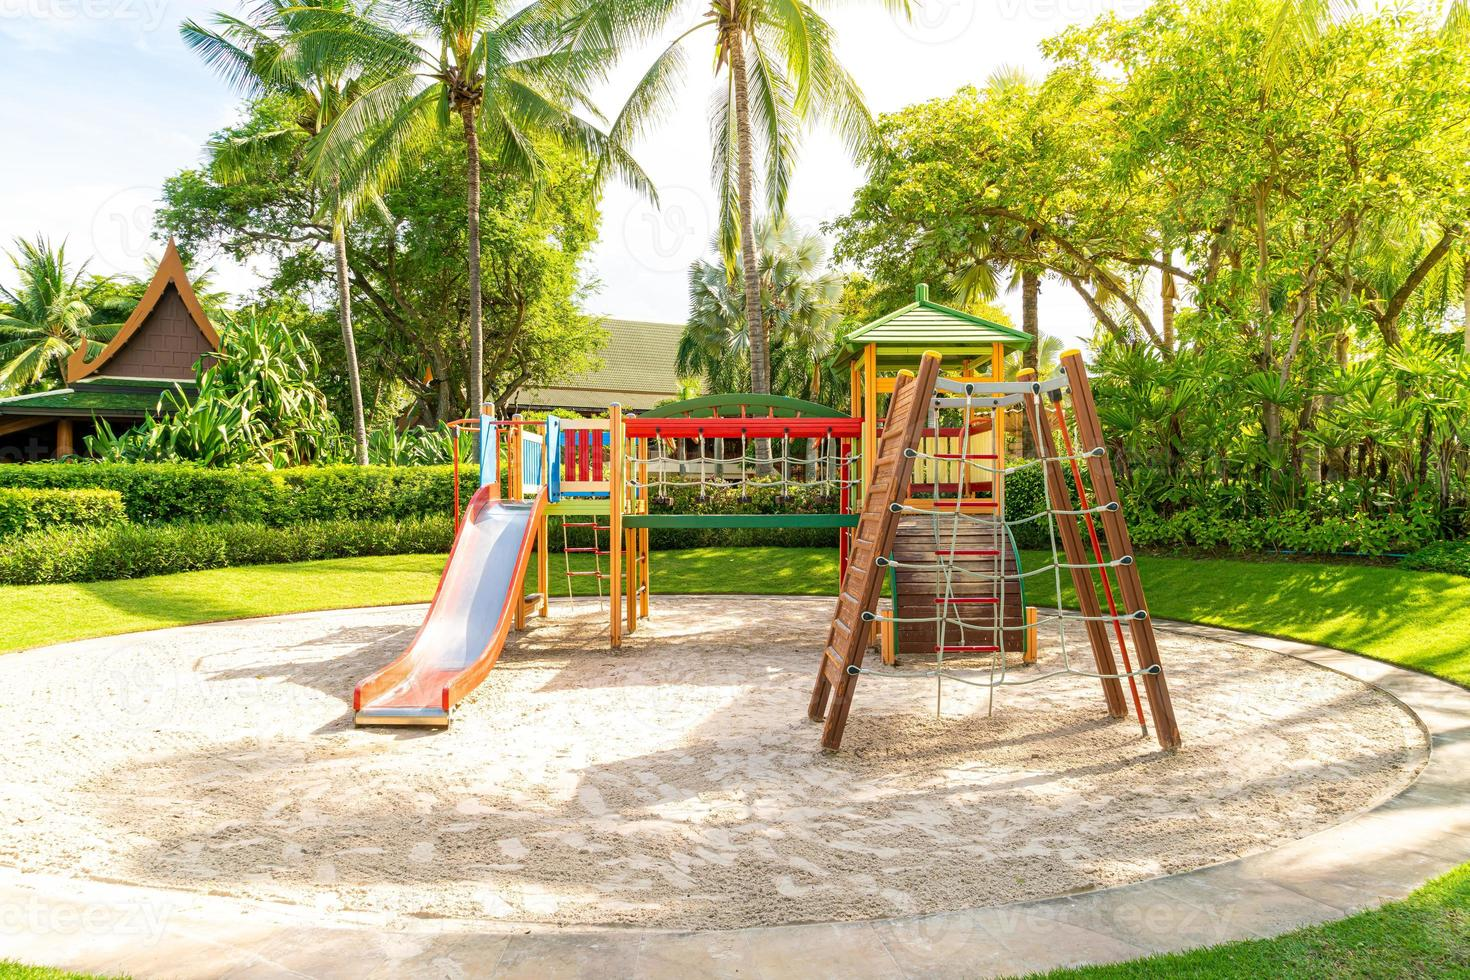 A children's playground, a slider located on the sand photo